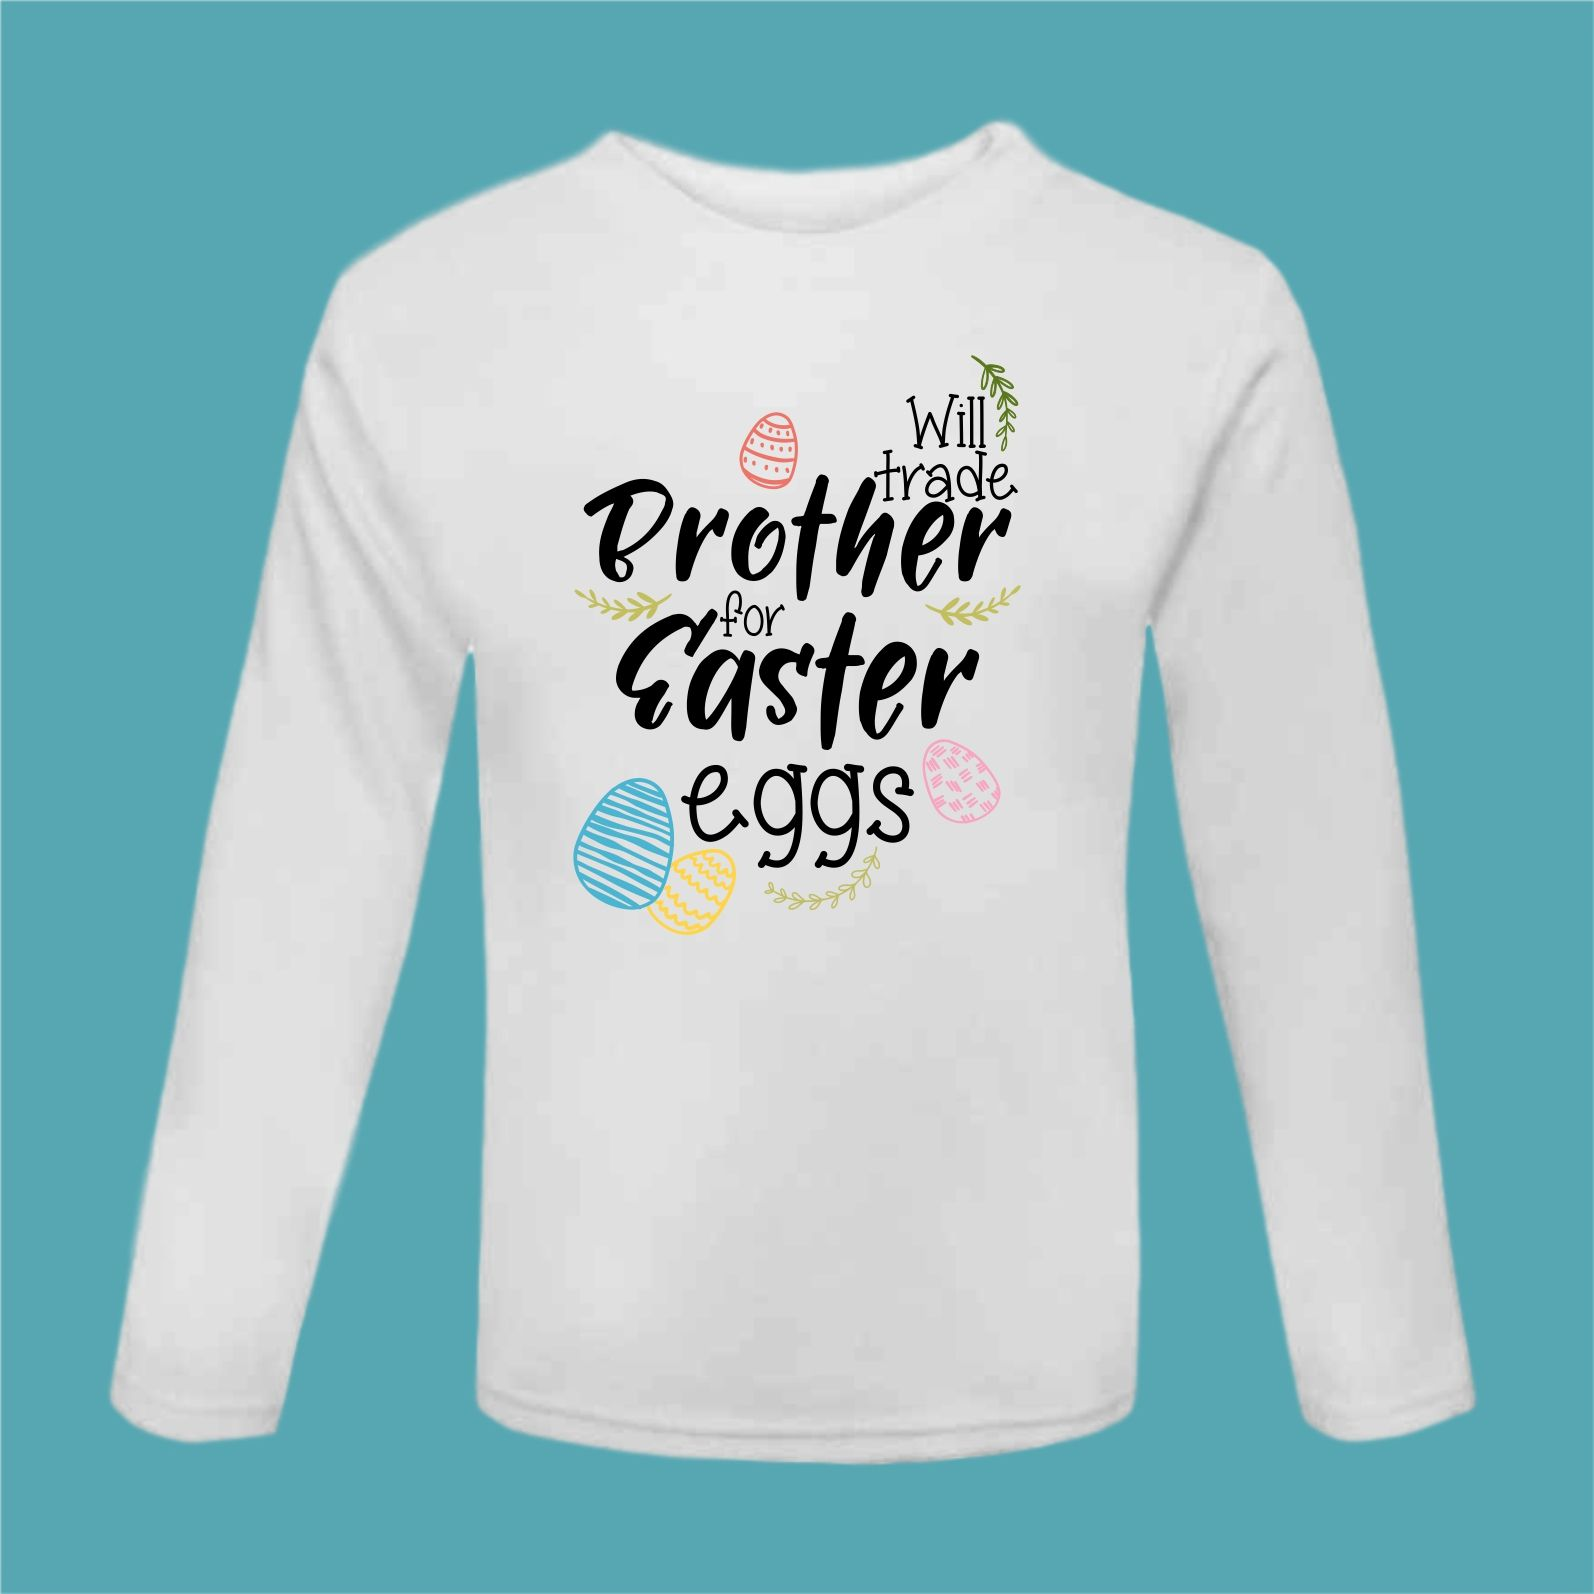 b26ddaeb Easter Tshirt Funny Easter Tee Trade Brother for Eggs Funny Chocolate